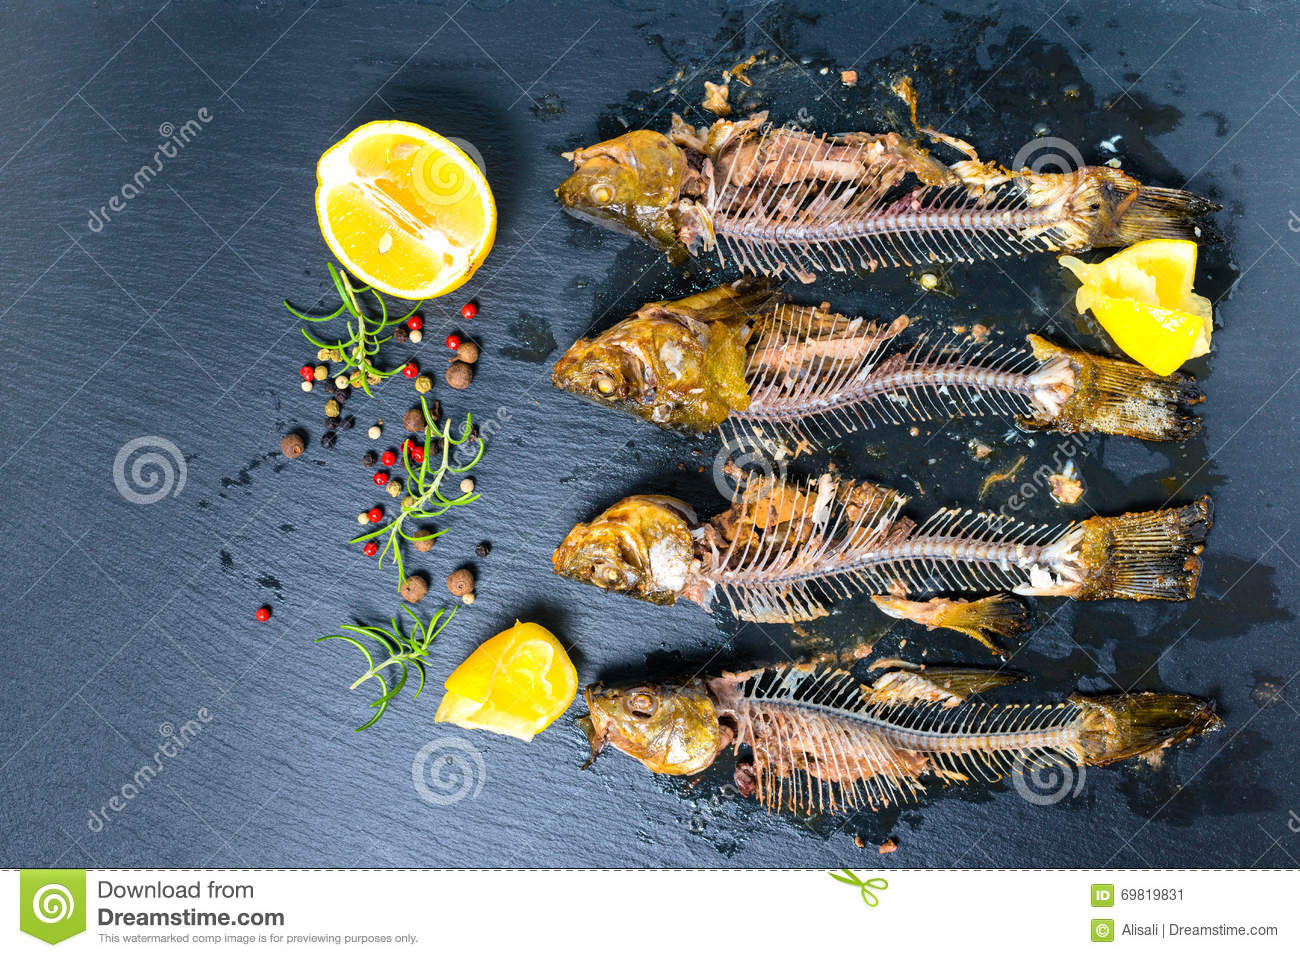 Top view of fish skeleton bones, squeezed lemon and flavor peppe